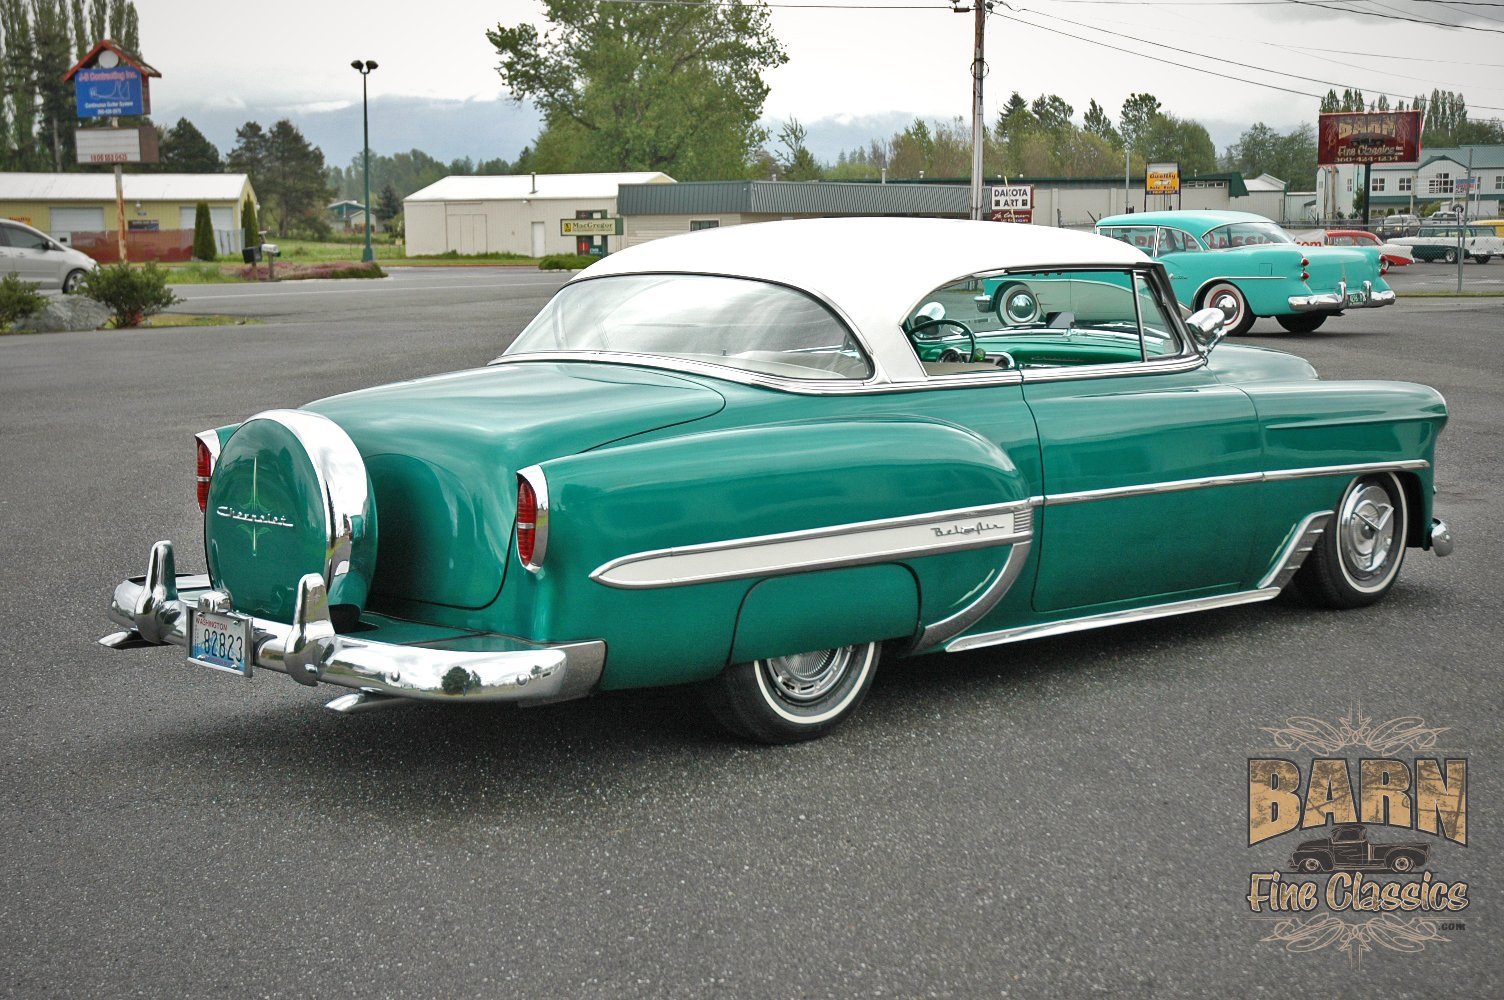 1953 chevy belair 2 door hard top hotrod hot rod custom for 1953 chevy belair 2 door hardtop